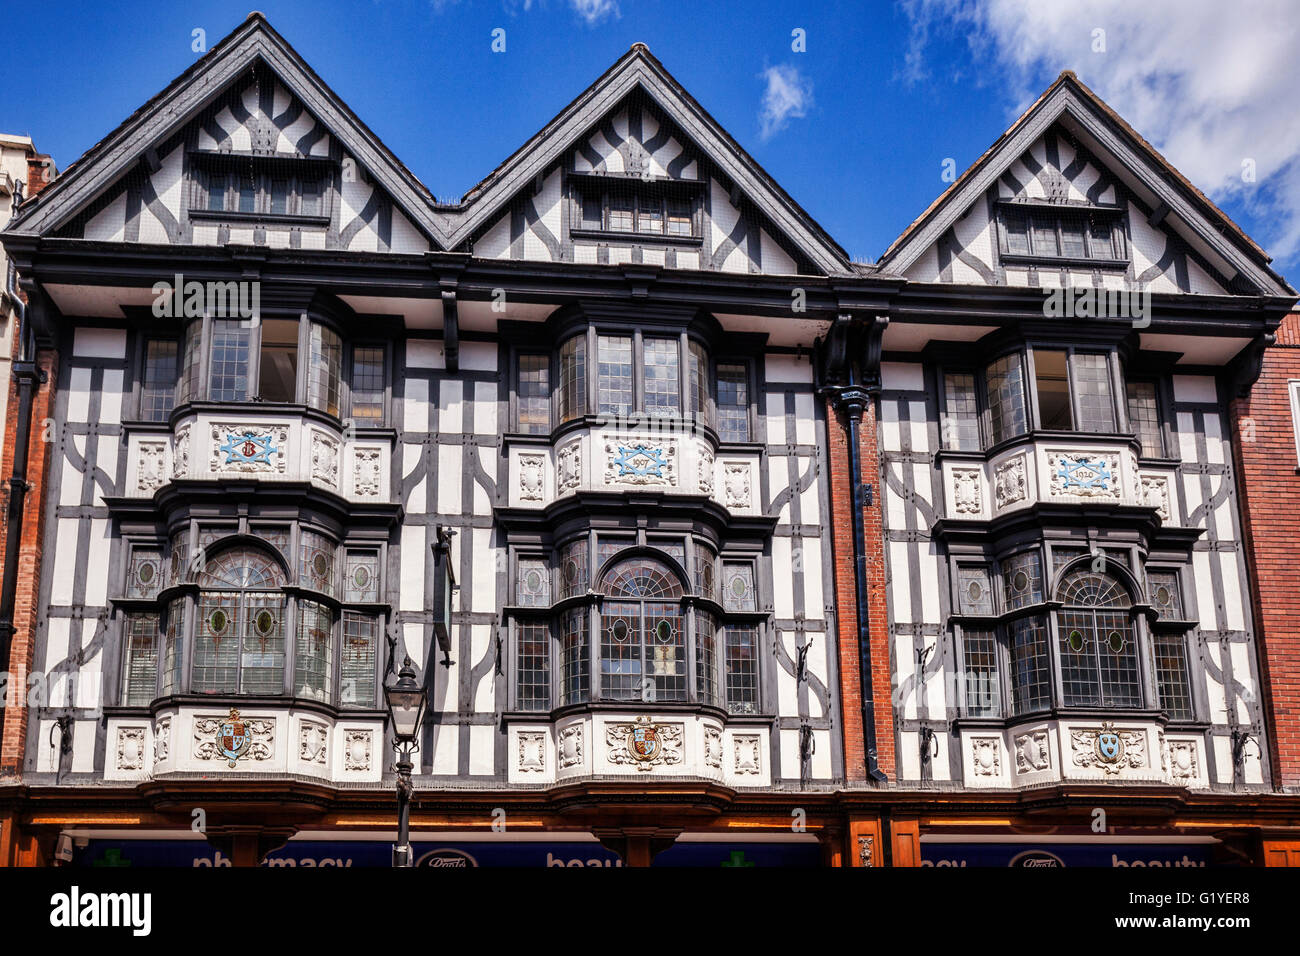 Tudor building in Pride Hill, Shrewsbury, half timbered and decorated with pargetting, Shropshire, England, UK - Stock Image